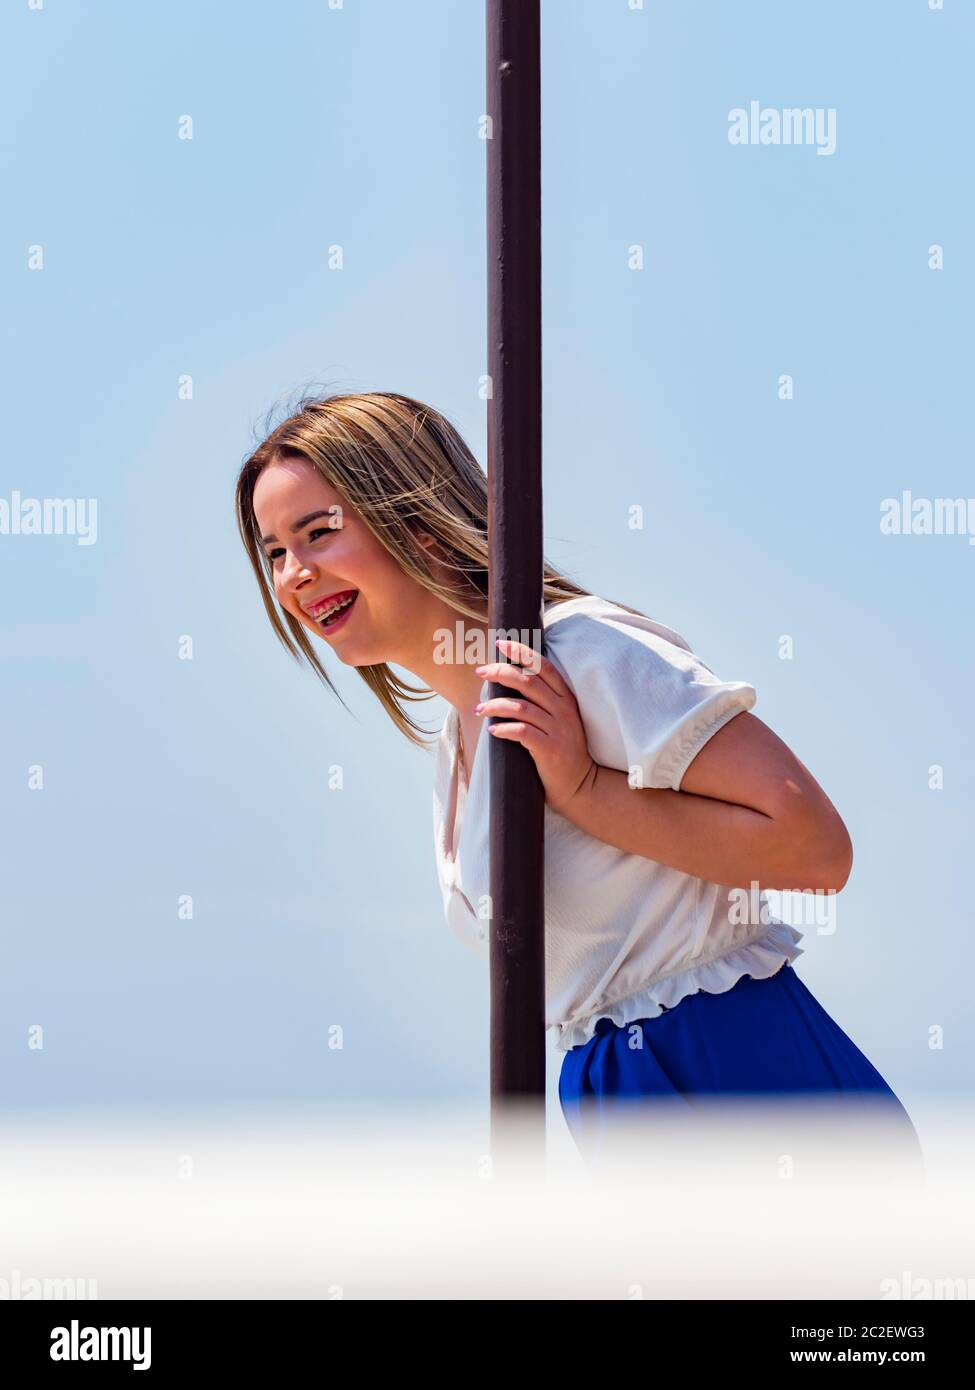 Teengirl spontaneous with teeth braces laughing squinting eyes looking away hand holding metal post column Stock Photo